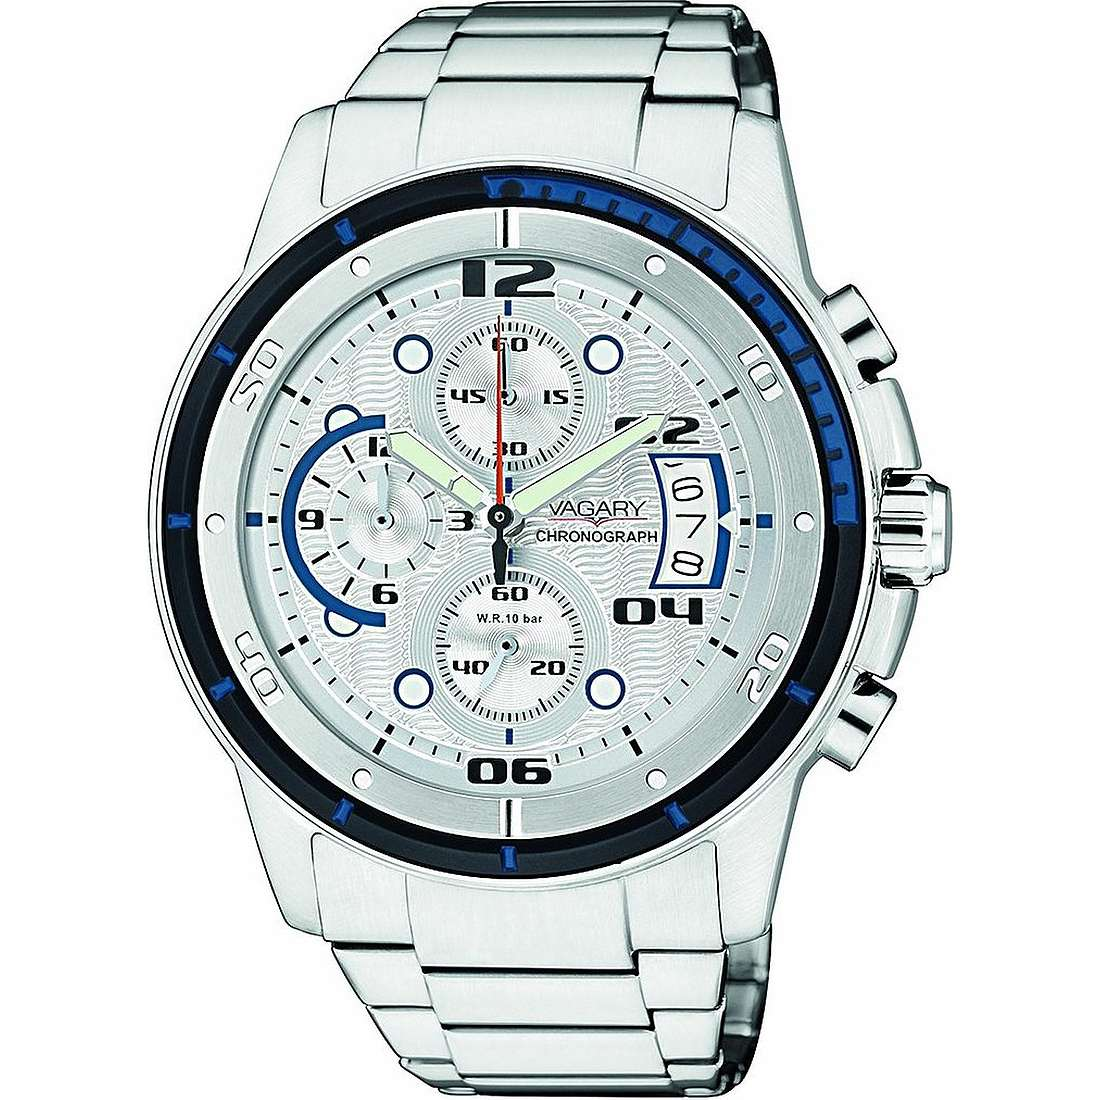 montre chronographe homme Vagary By Citizen IA8-211-11